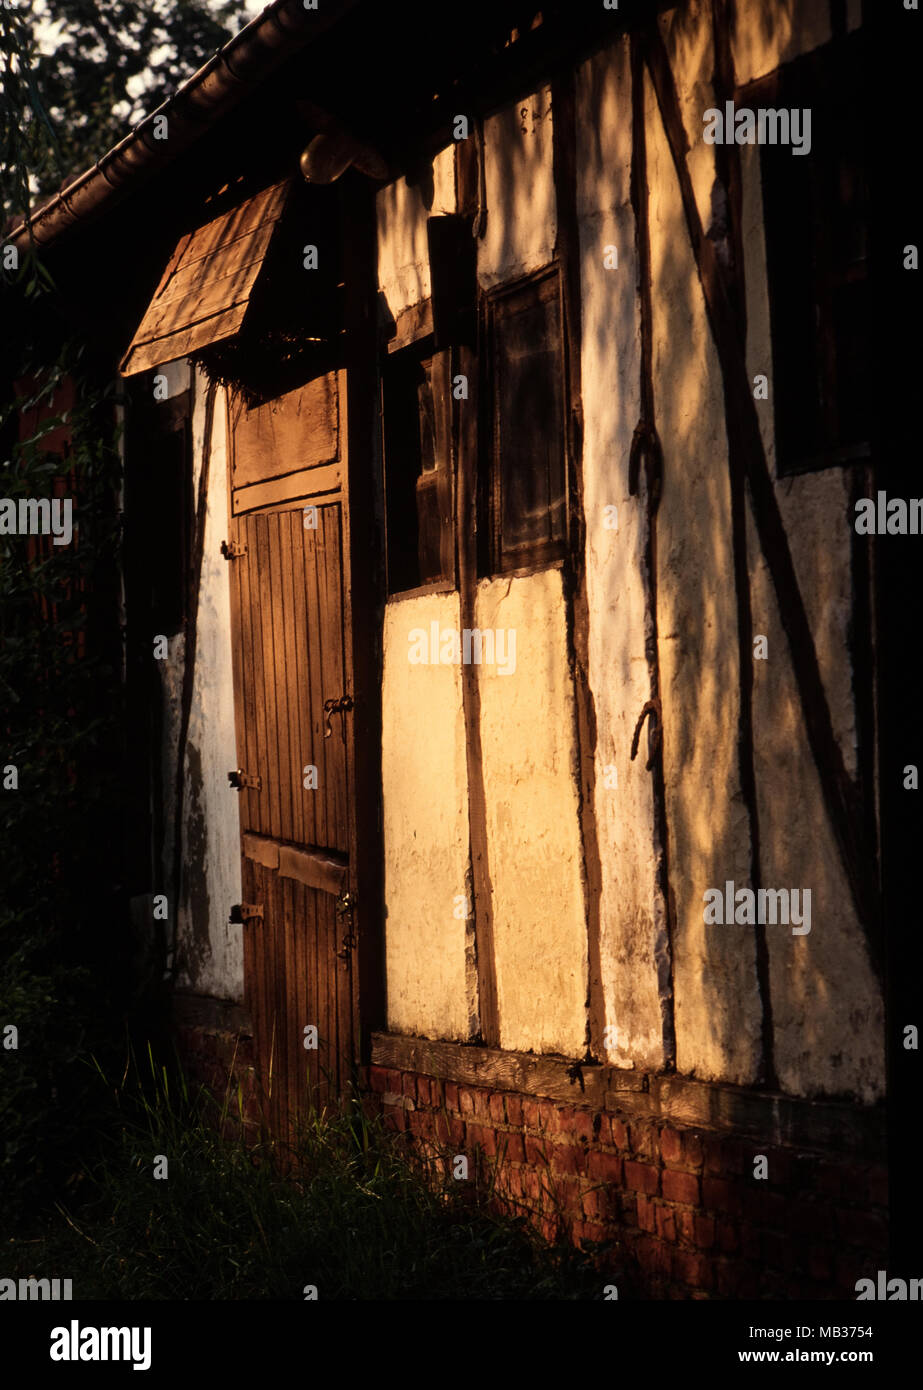 Barn Door in evening light,Normandy France. 2000 - Stock Image